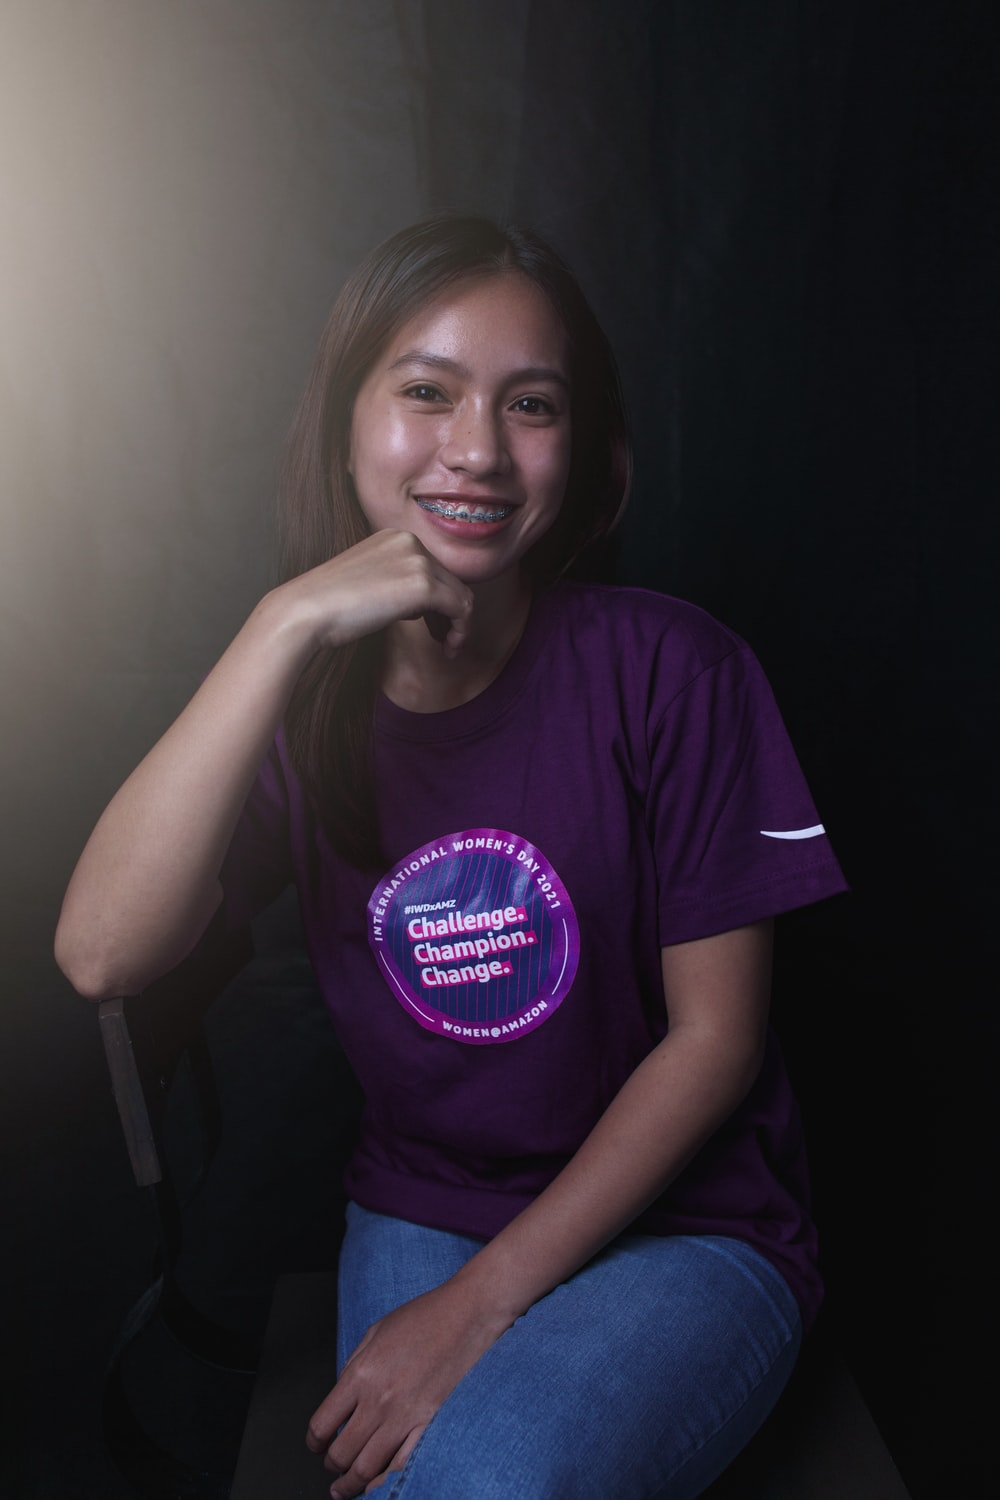 woman in purple crew neck t-shirt smiling